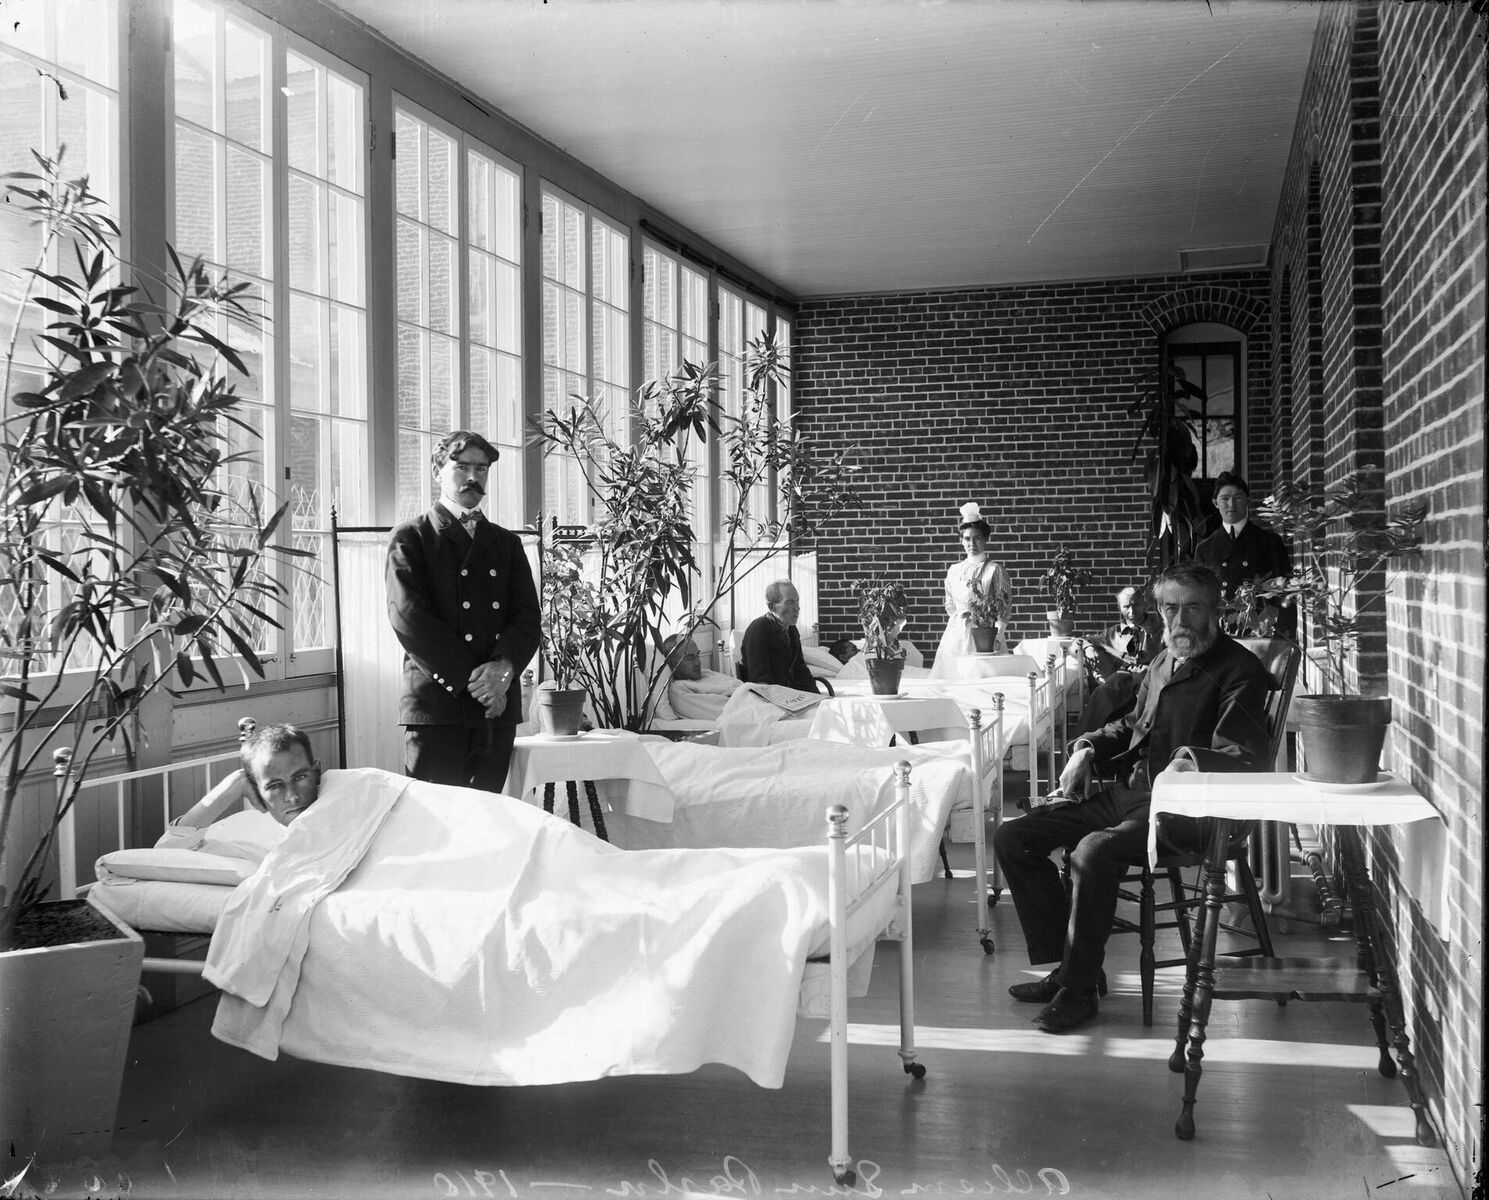 Saint Elizabeths Hospital